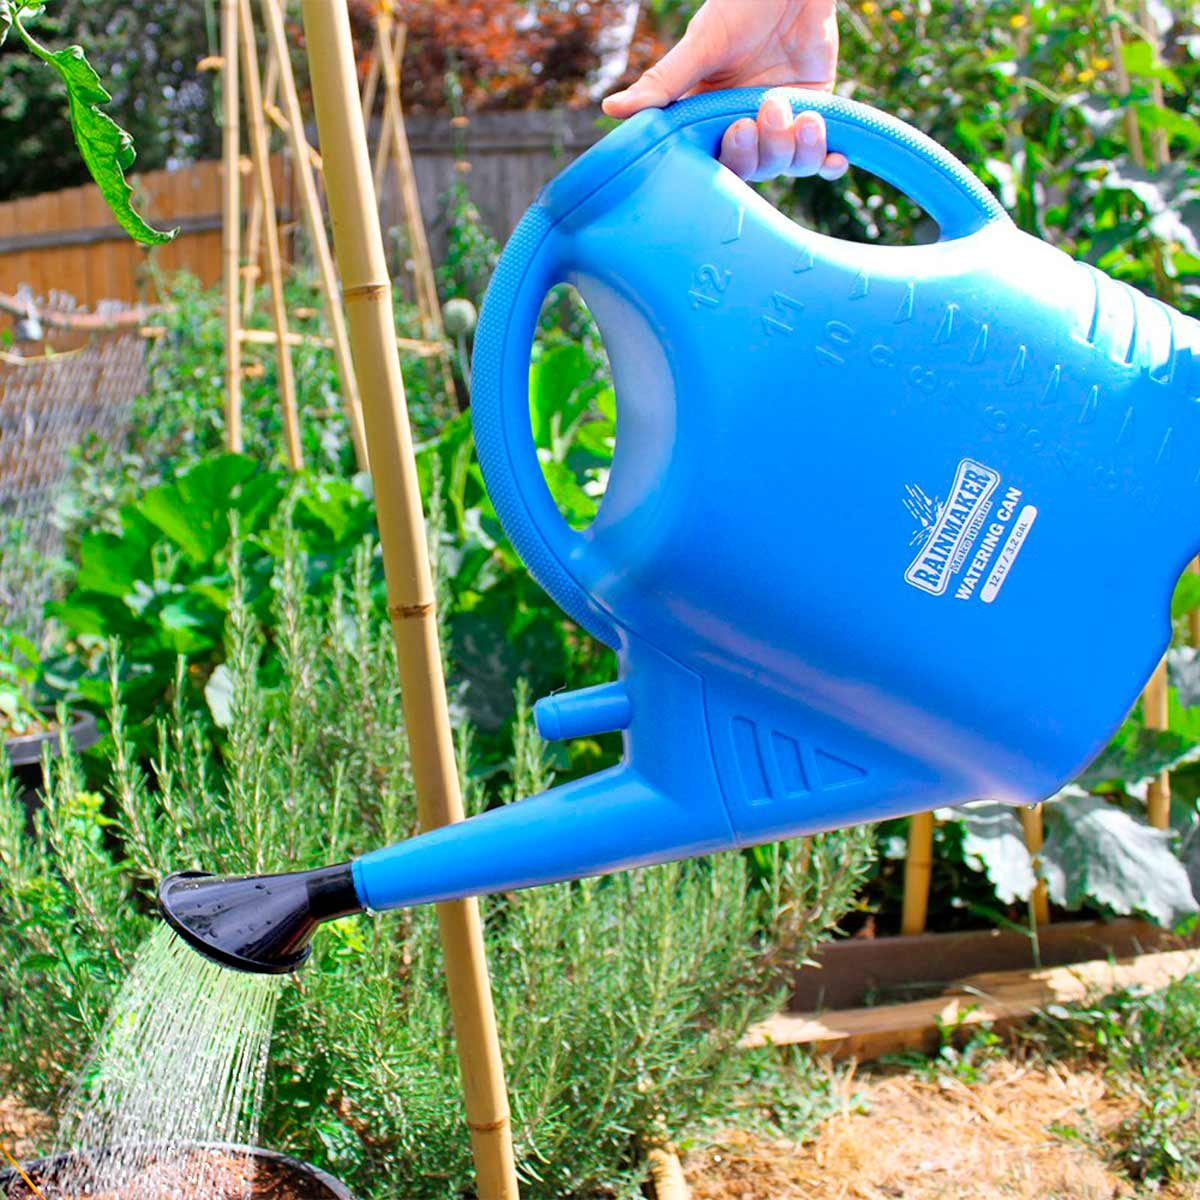 Rainmaker watering can